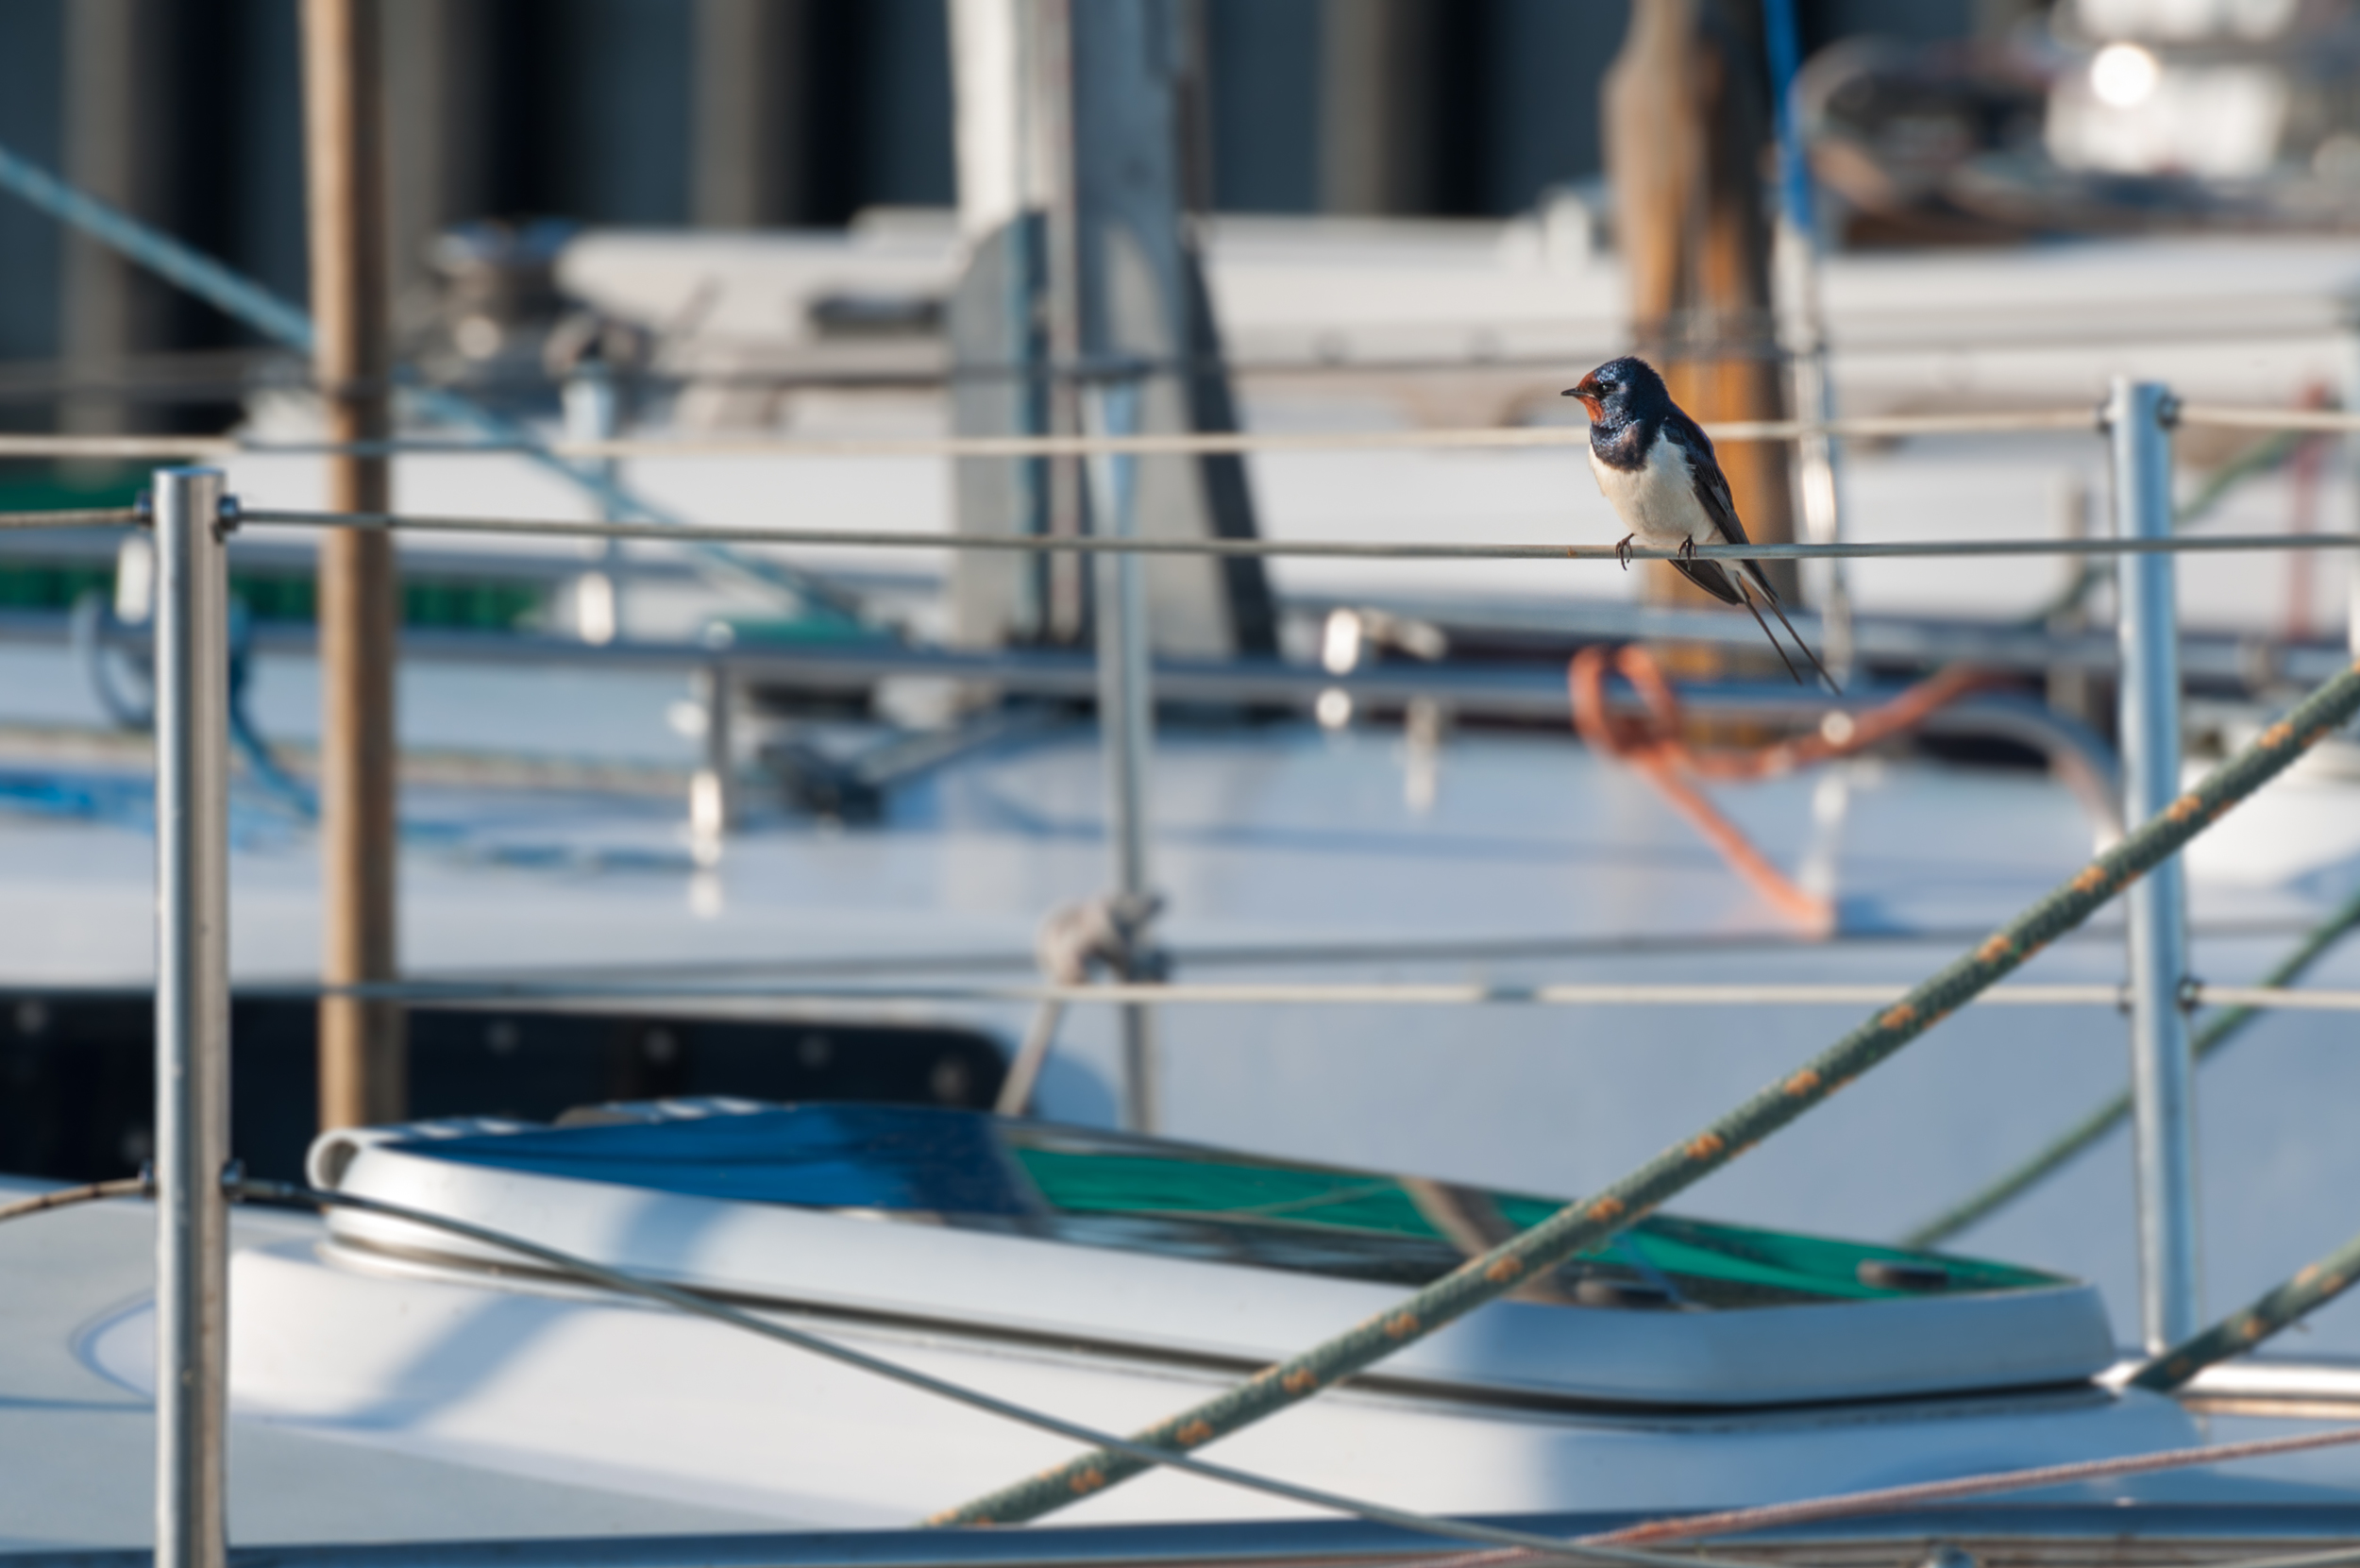 Swallow bird - 140609 - DSC_1402.JPG